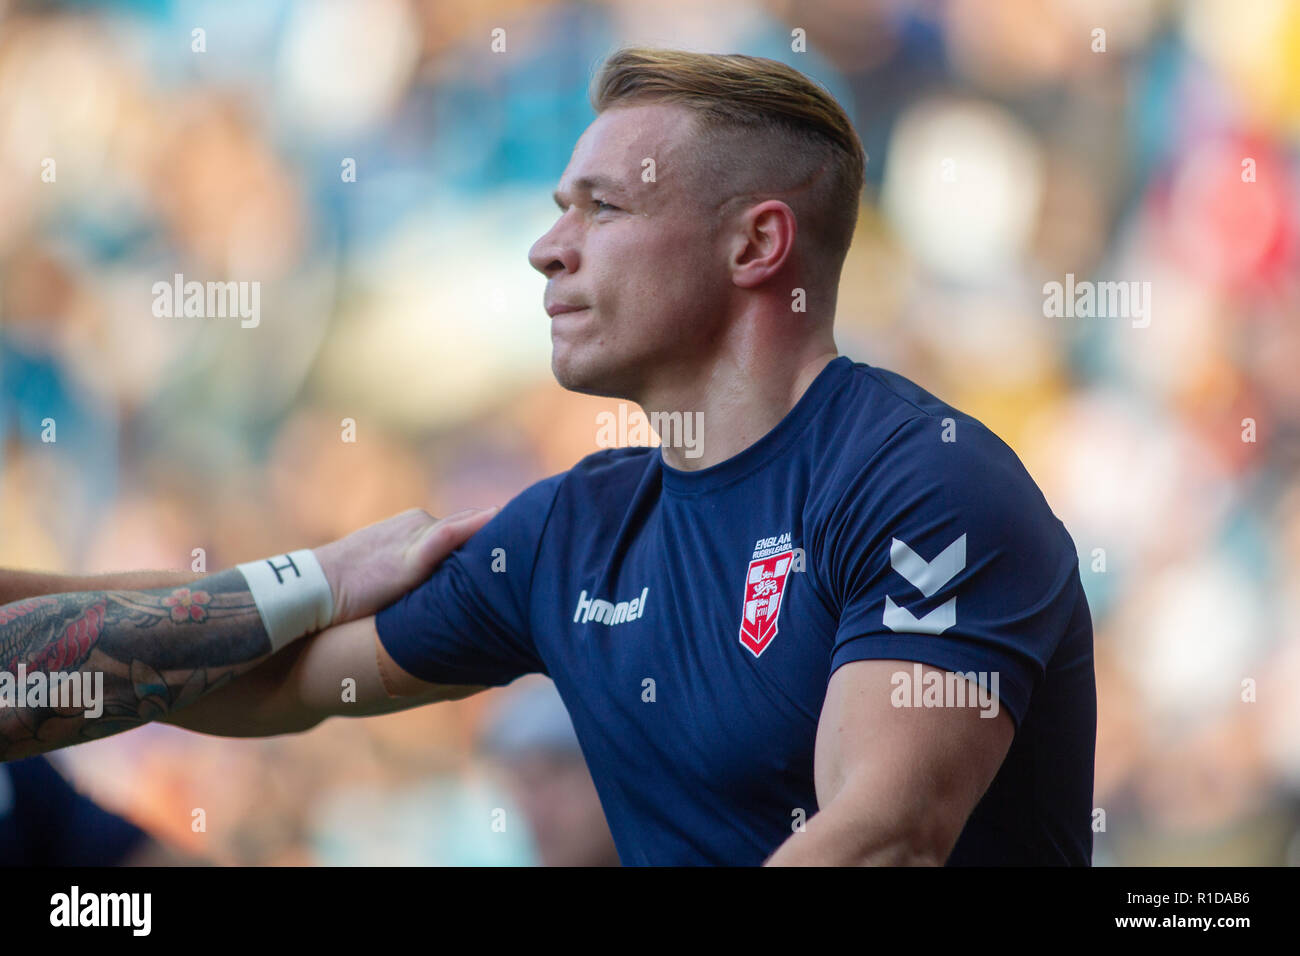 Leeds, UK. 11th Nov 2018. 11th November, Elland Road, Leeds, England ; Rugby League International  3rd Test Match , England v New Zealand ;  Jonny Lomax of England  in warmup  Credit:  Craig Milner/News Images Credit: News Images /Alamy Live News Stock Photo